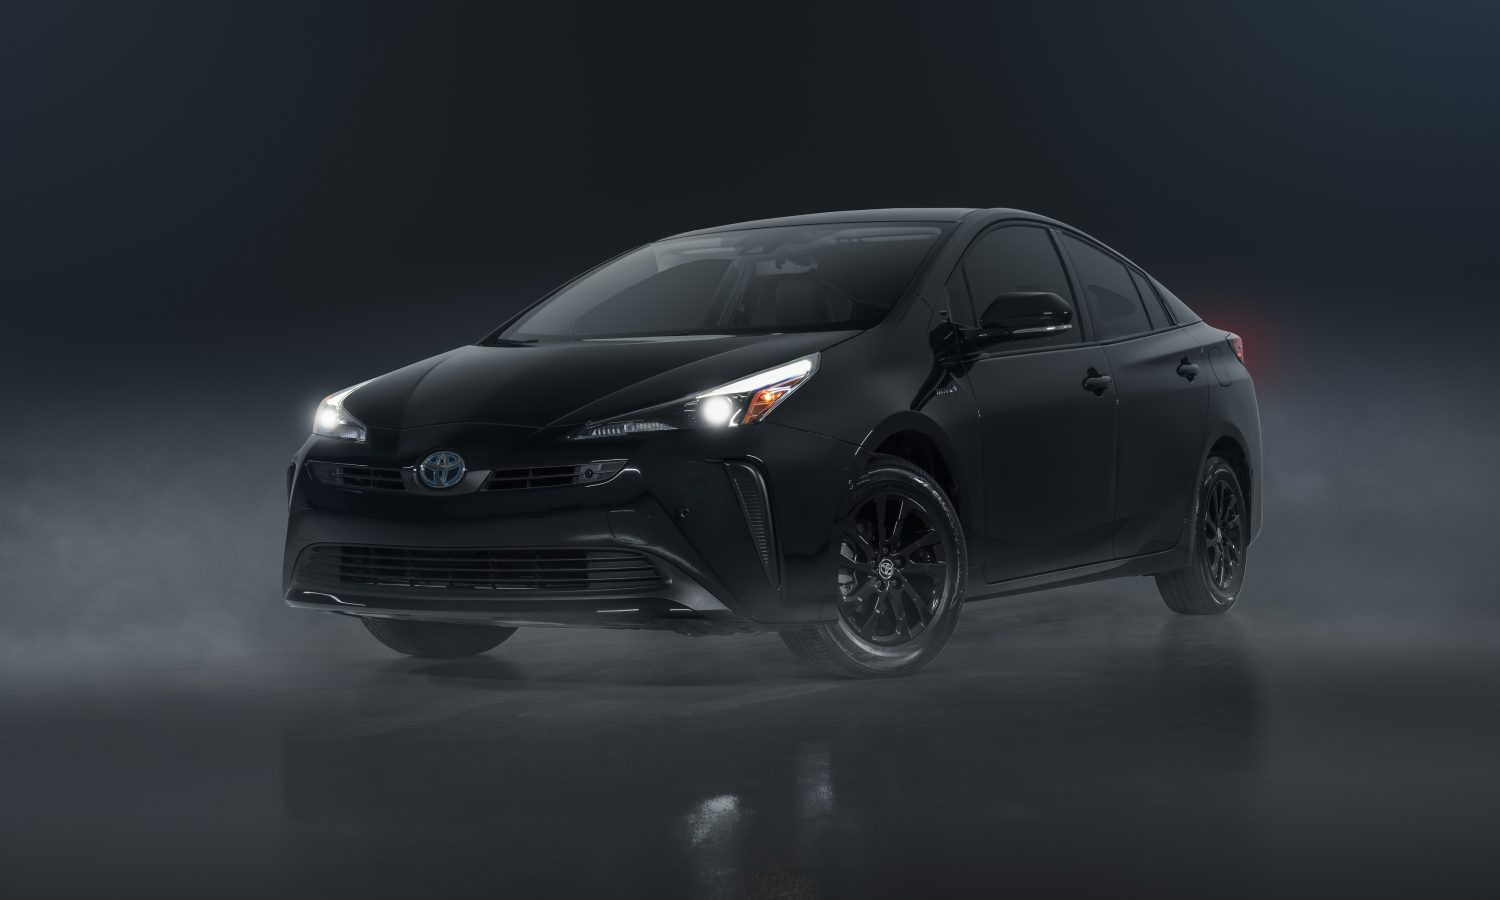 Iconic Hybrid Makes a Bold Statement: Toyota Announces Prius Nightshade Edition